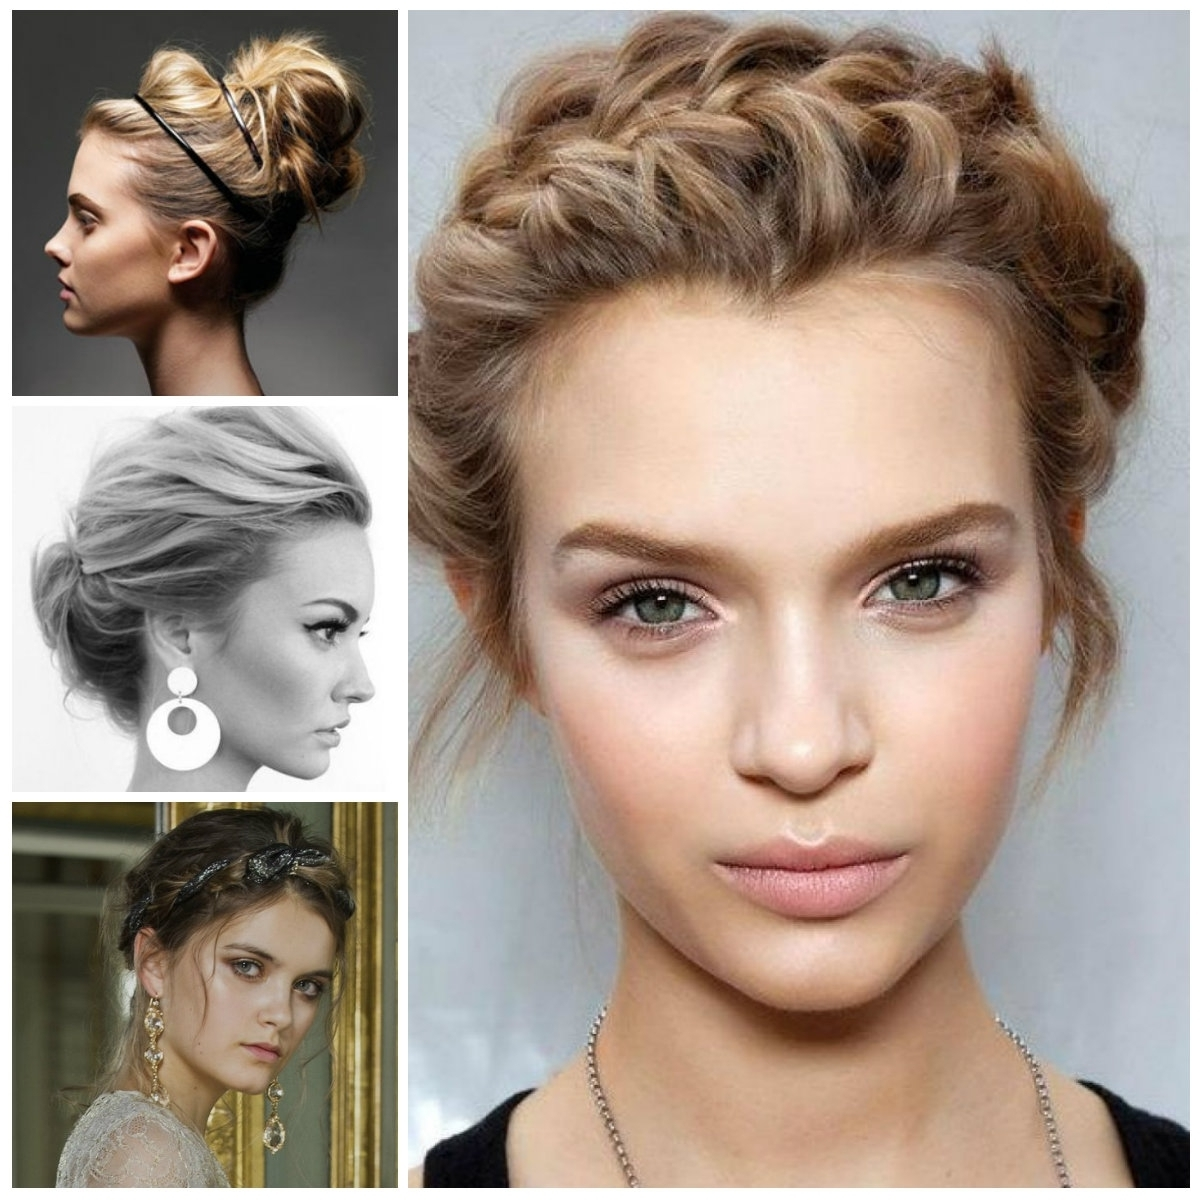 Casual Updo Hairstyles For Long Hair Casual Hairstyles Haircuts Throughout Casual Updo Hairstyles For Long Hair (View 10 of 15)